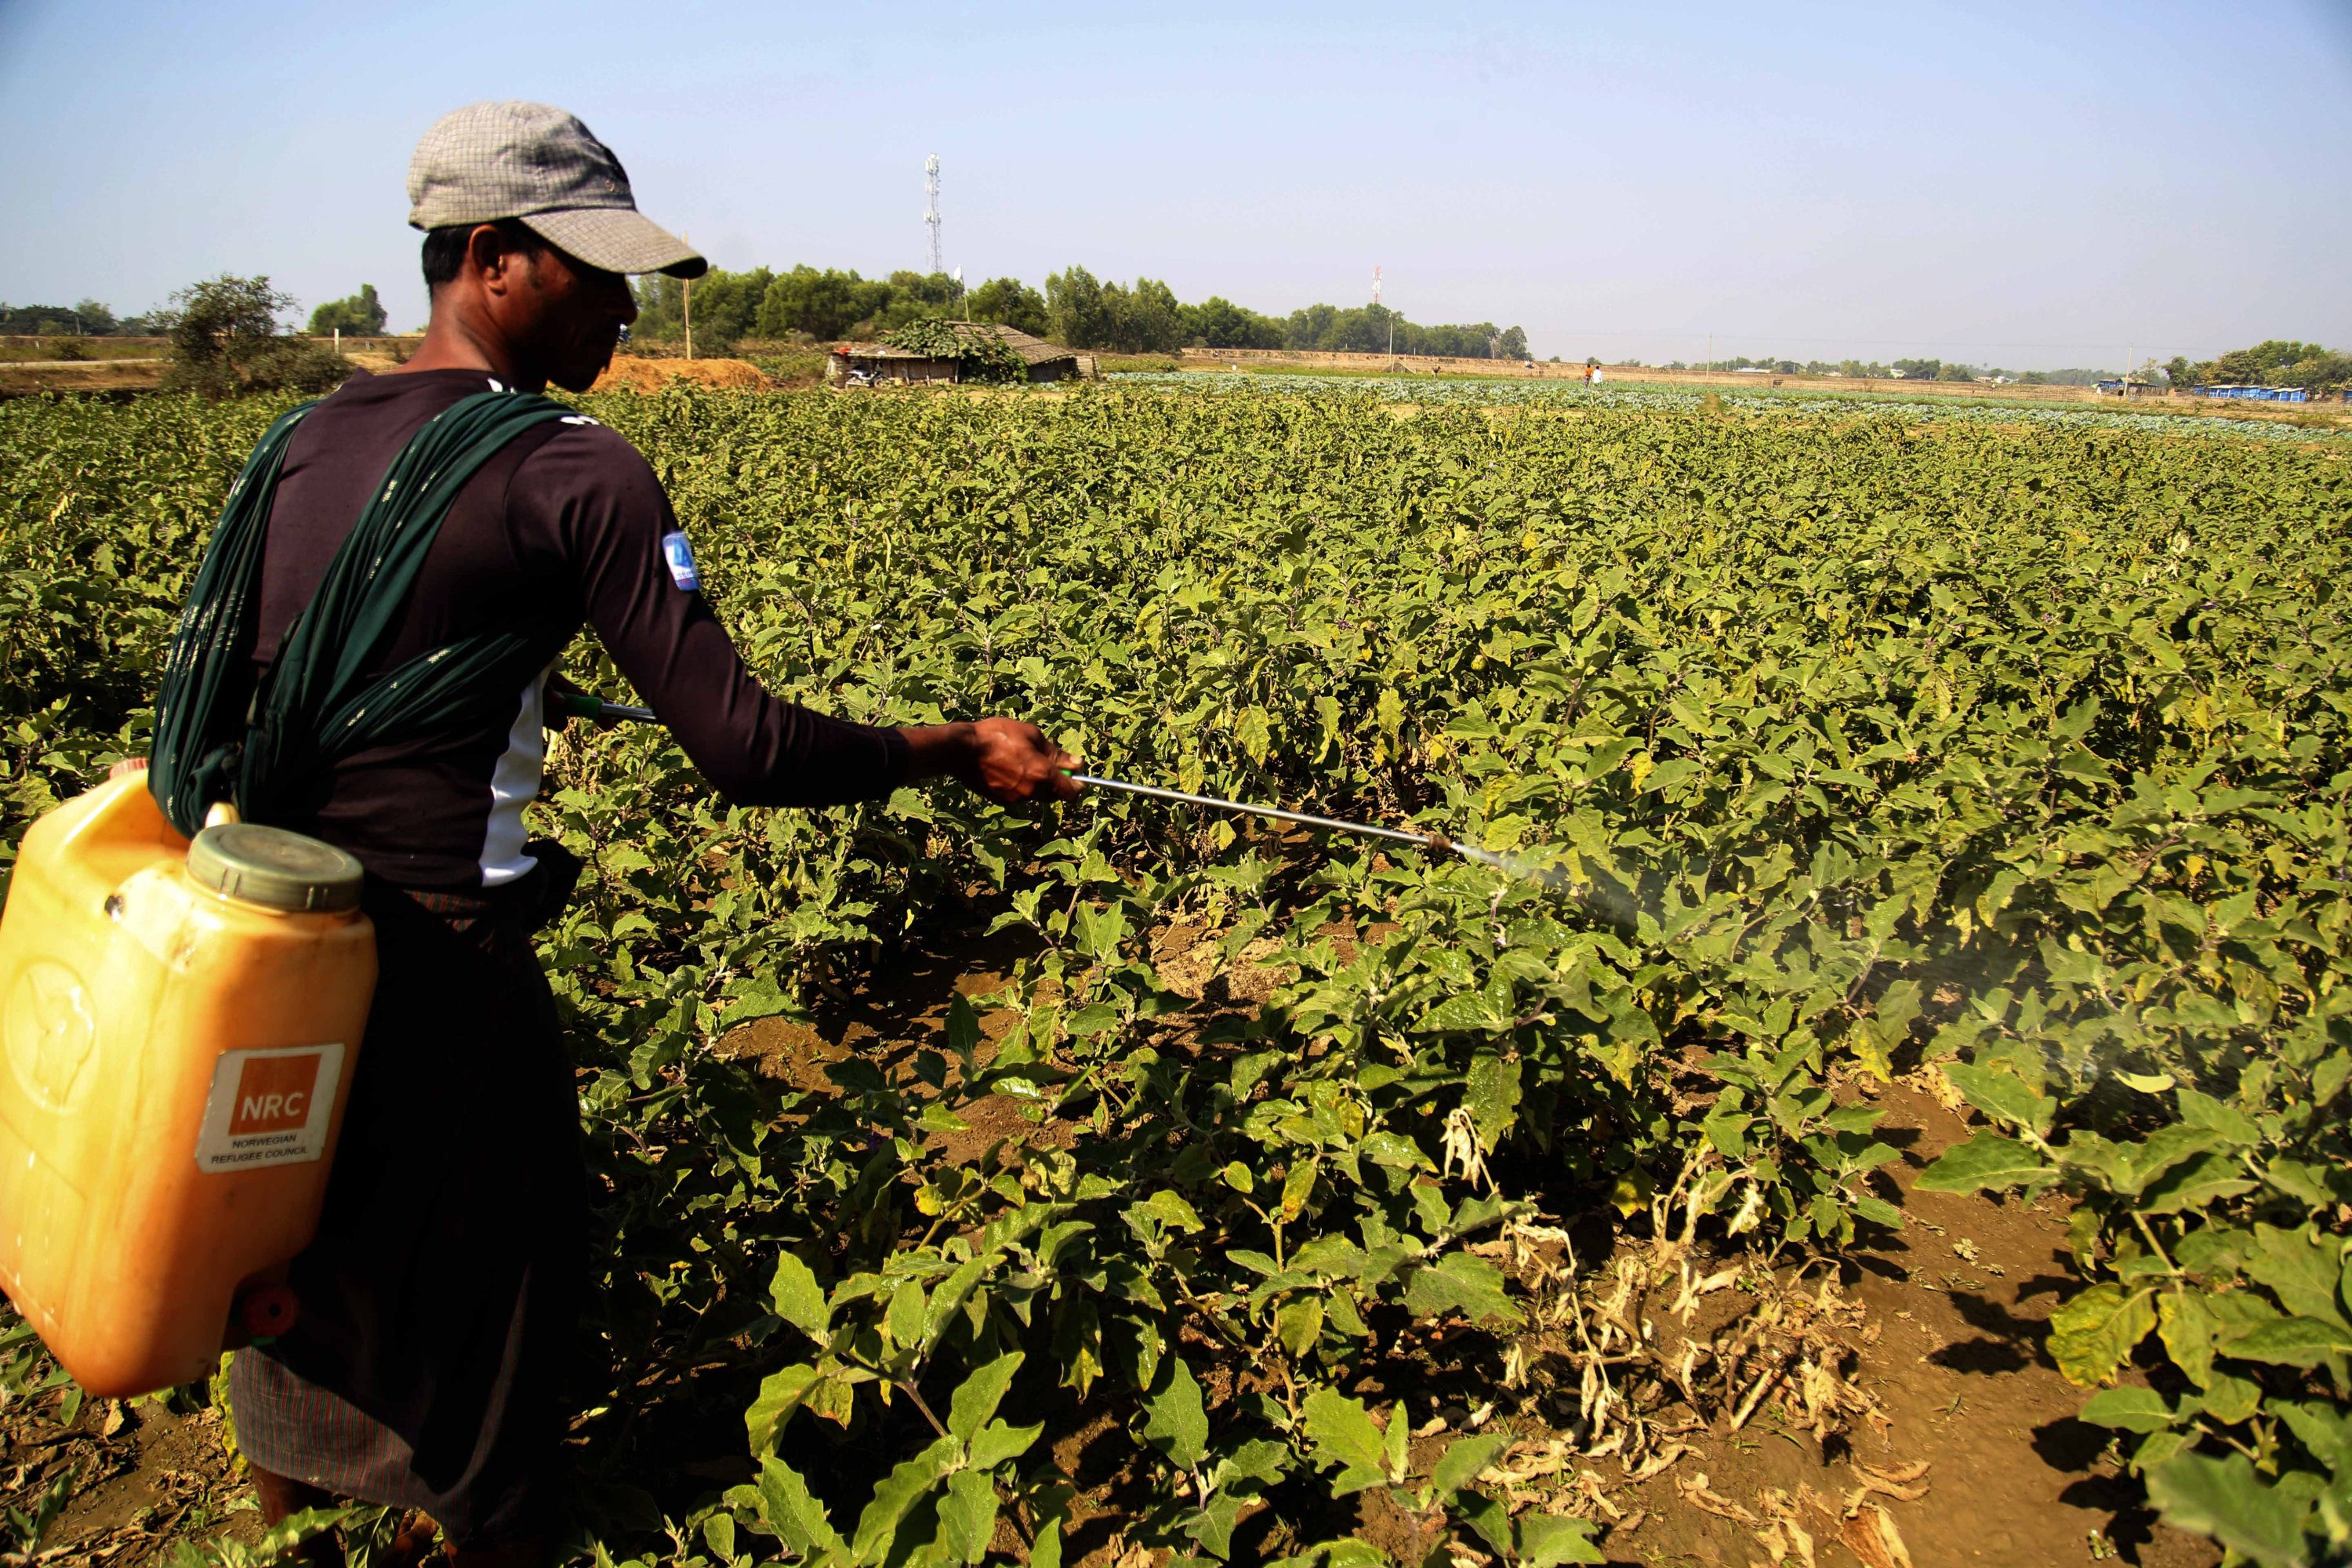 A man sprays insecticides on vegetables planted at the Thet Kel Pyin internally displaced persons (IDP) camp in Sittwe, Rakhine State, Myanmar, Feb. 3, 2021. (EPA Photo)